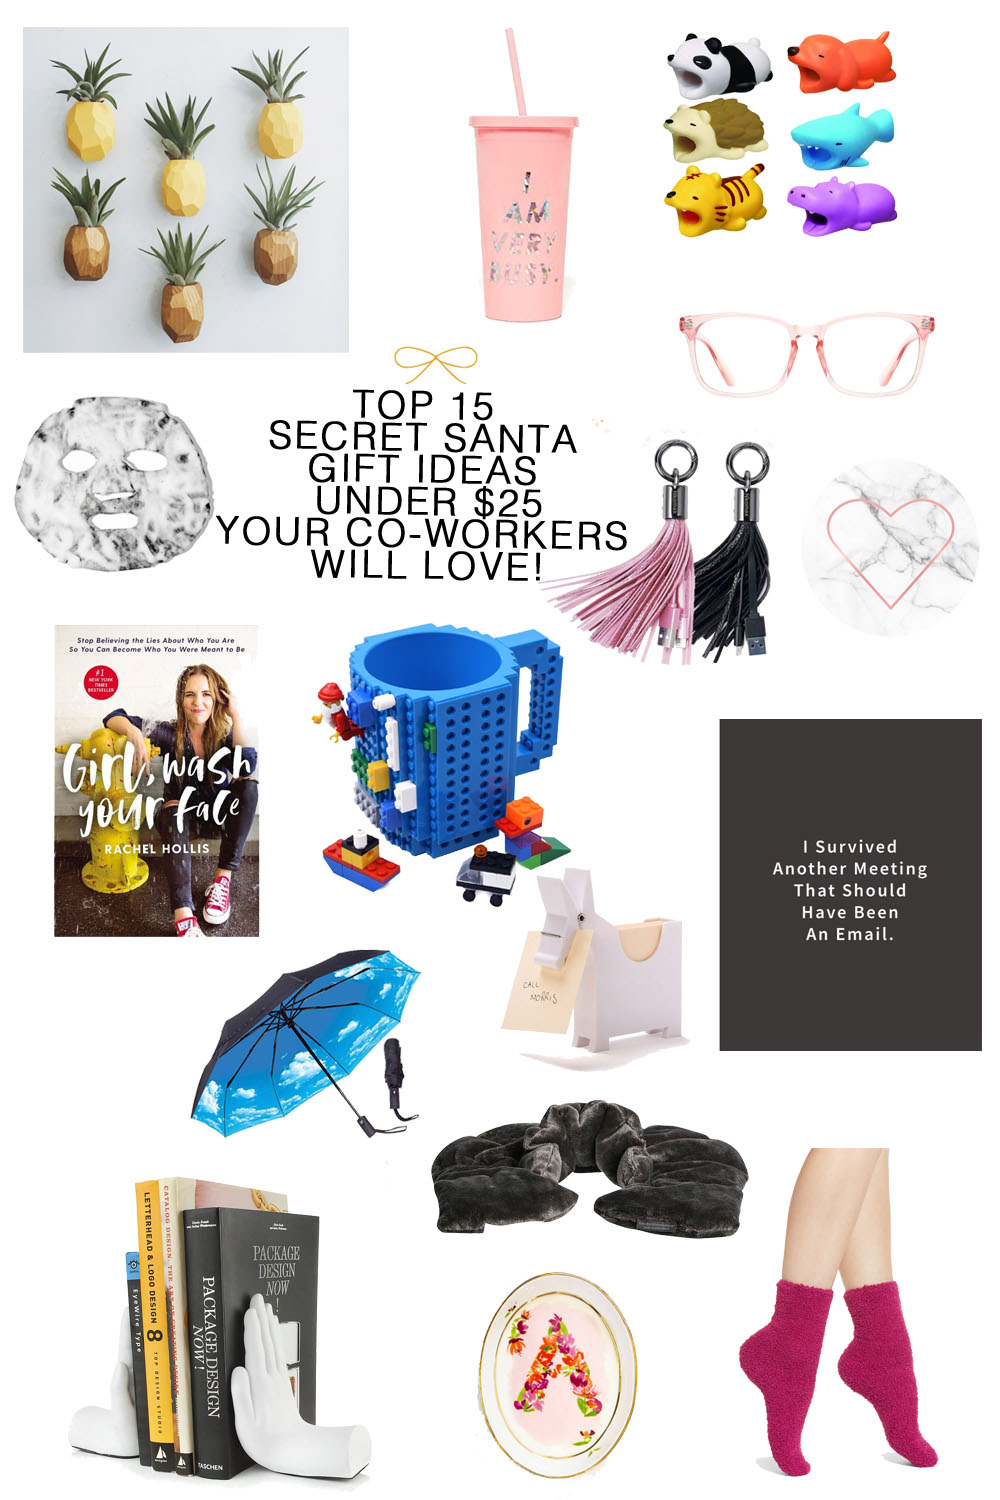 The 15 Best Gift Ideas for Secret Santa for Your Co-Workers! // #holiday #giftideas #giftguide #officeparty - Top 15 Secret Santa Gift Ideas Your Co-Workers Will Love featured by top Florida lifestyle blogger, The Modern Savvy